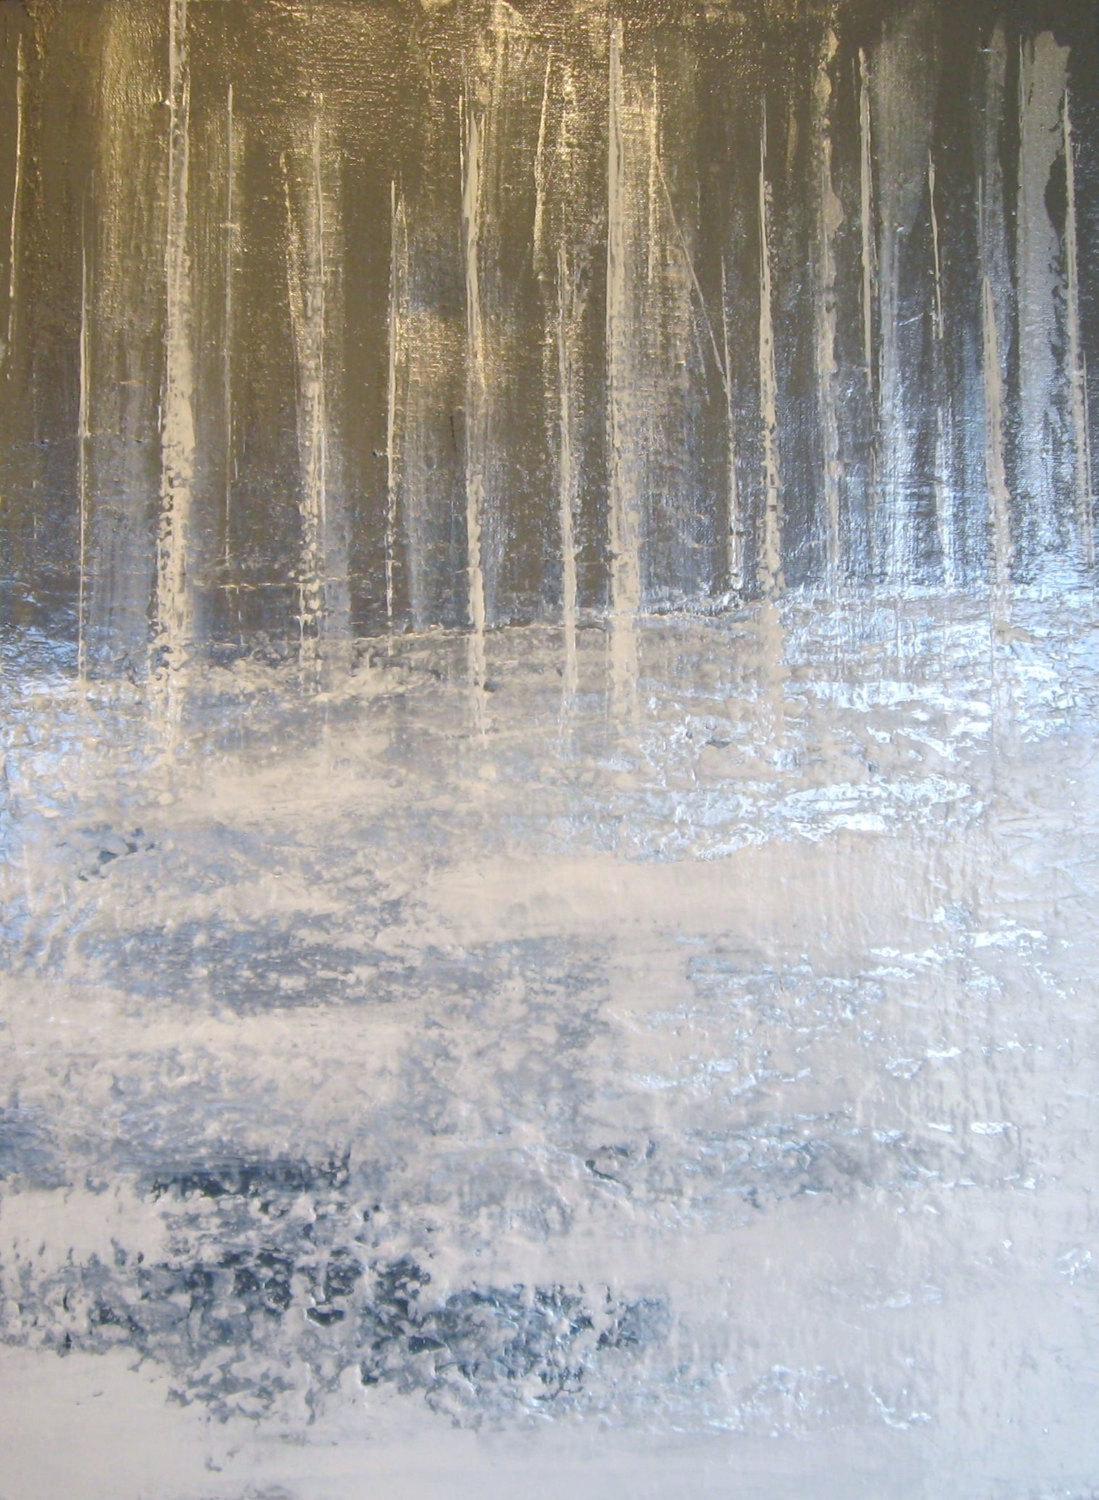 Large Expressionist Textured Original Painting Stainless Steel Silver Trees in Snow - JoeysArtOriginals